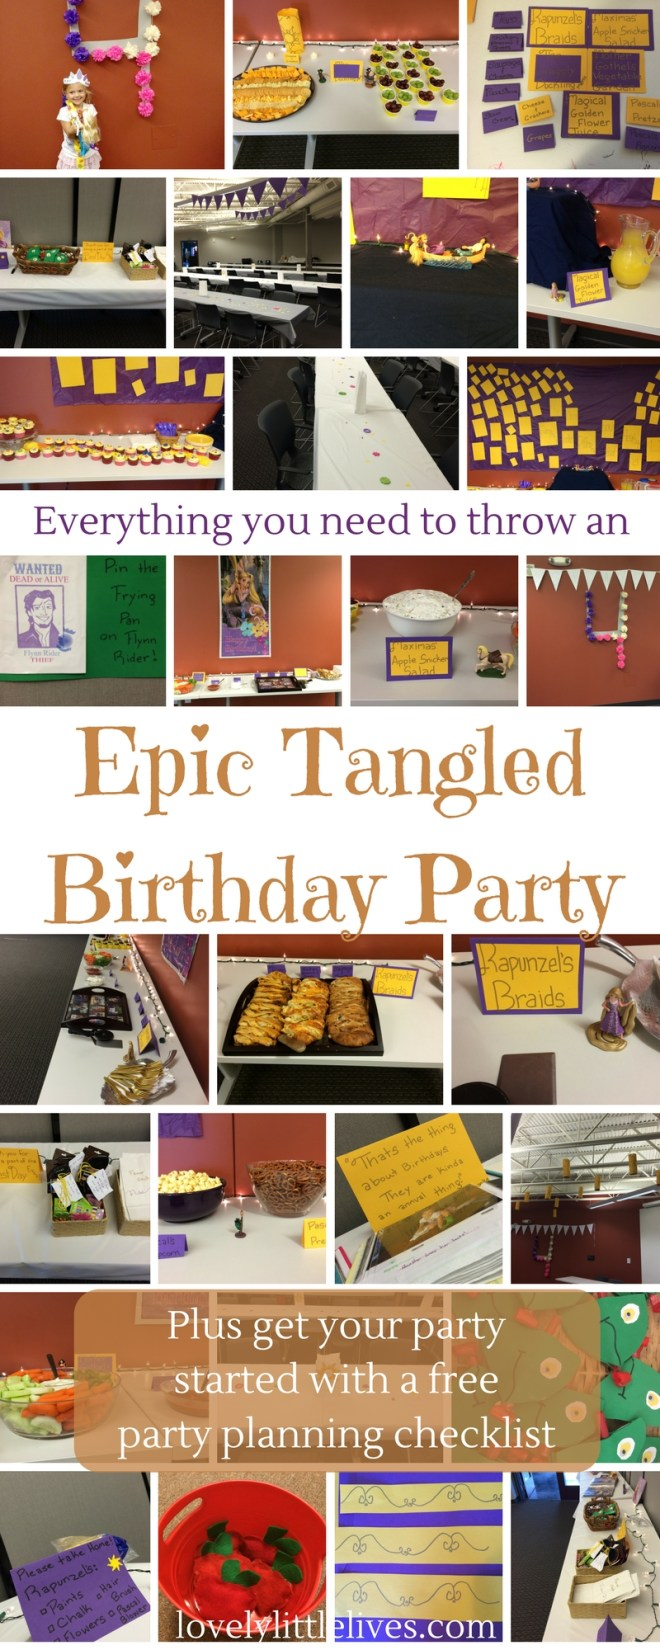 Everything you need to throw an Epic Tangled Birthday Party